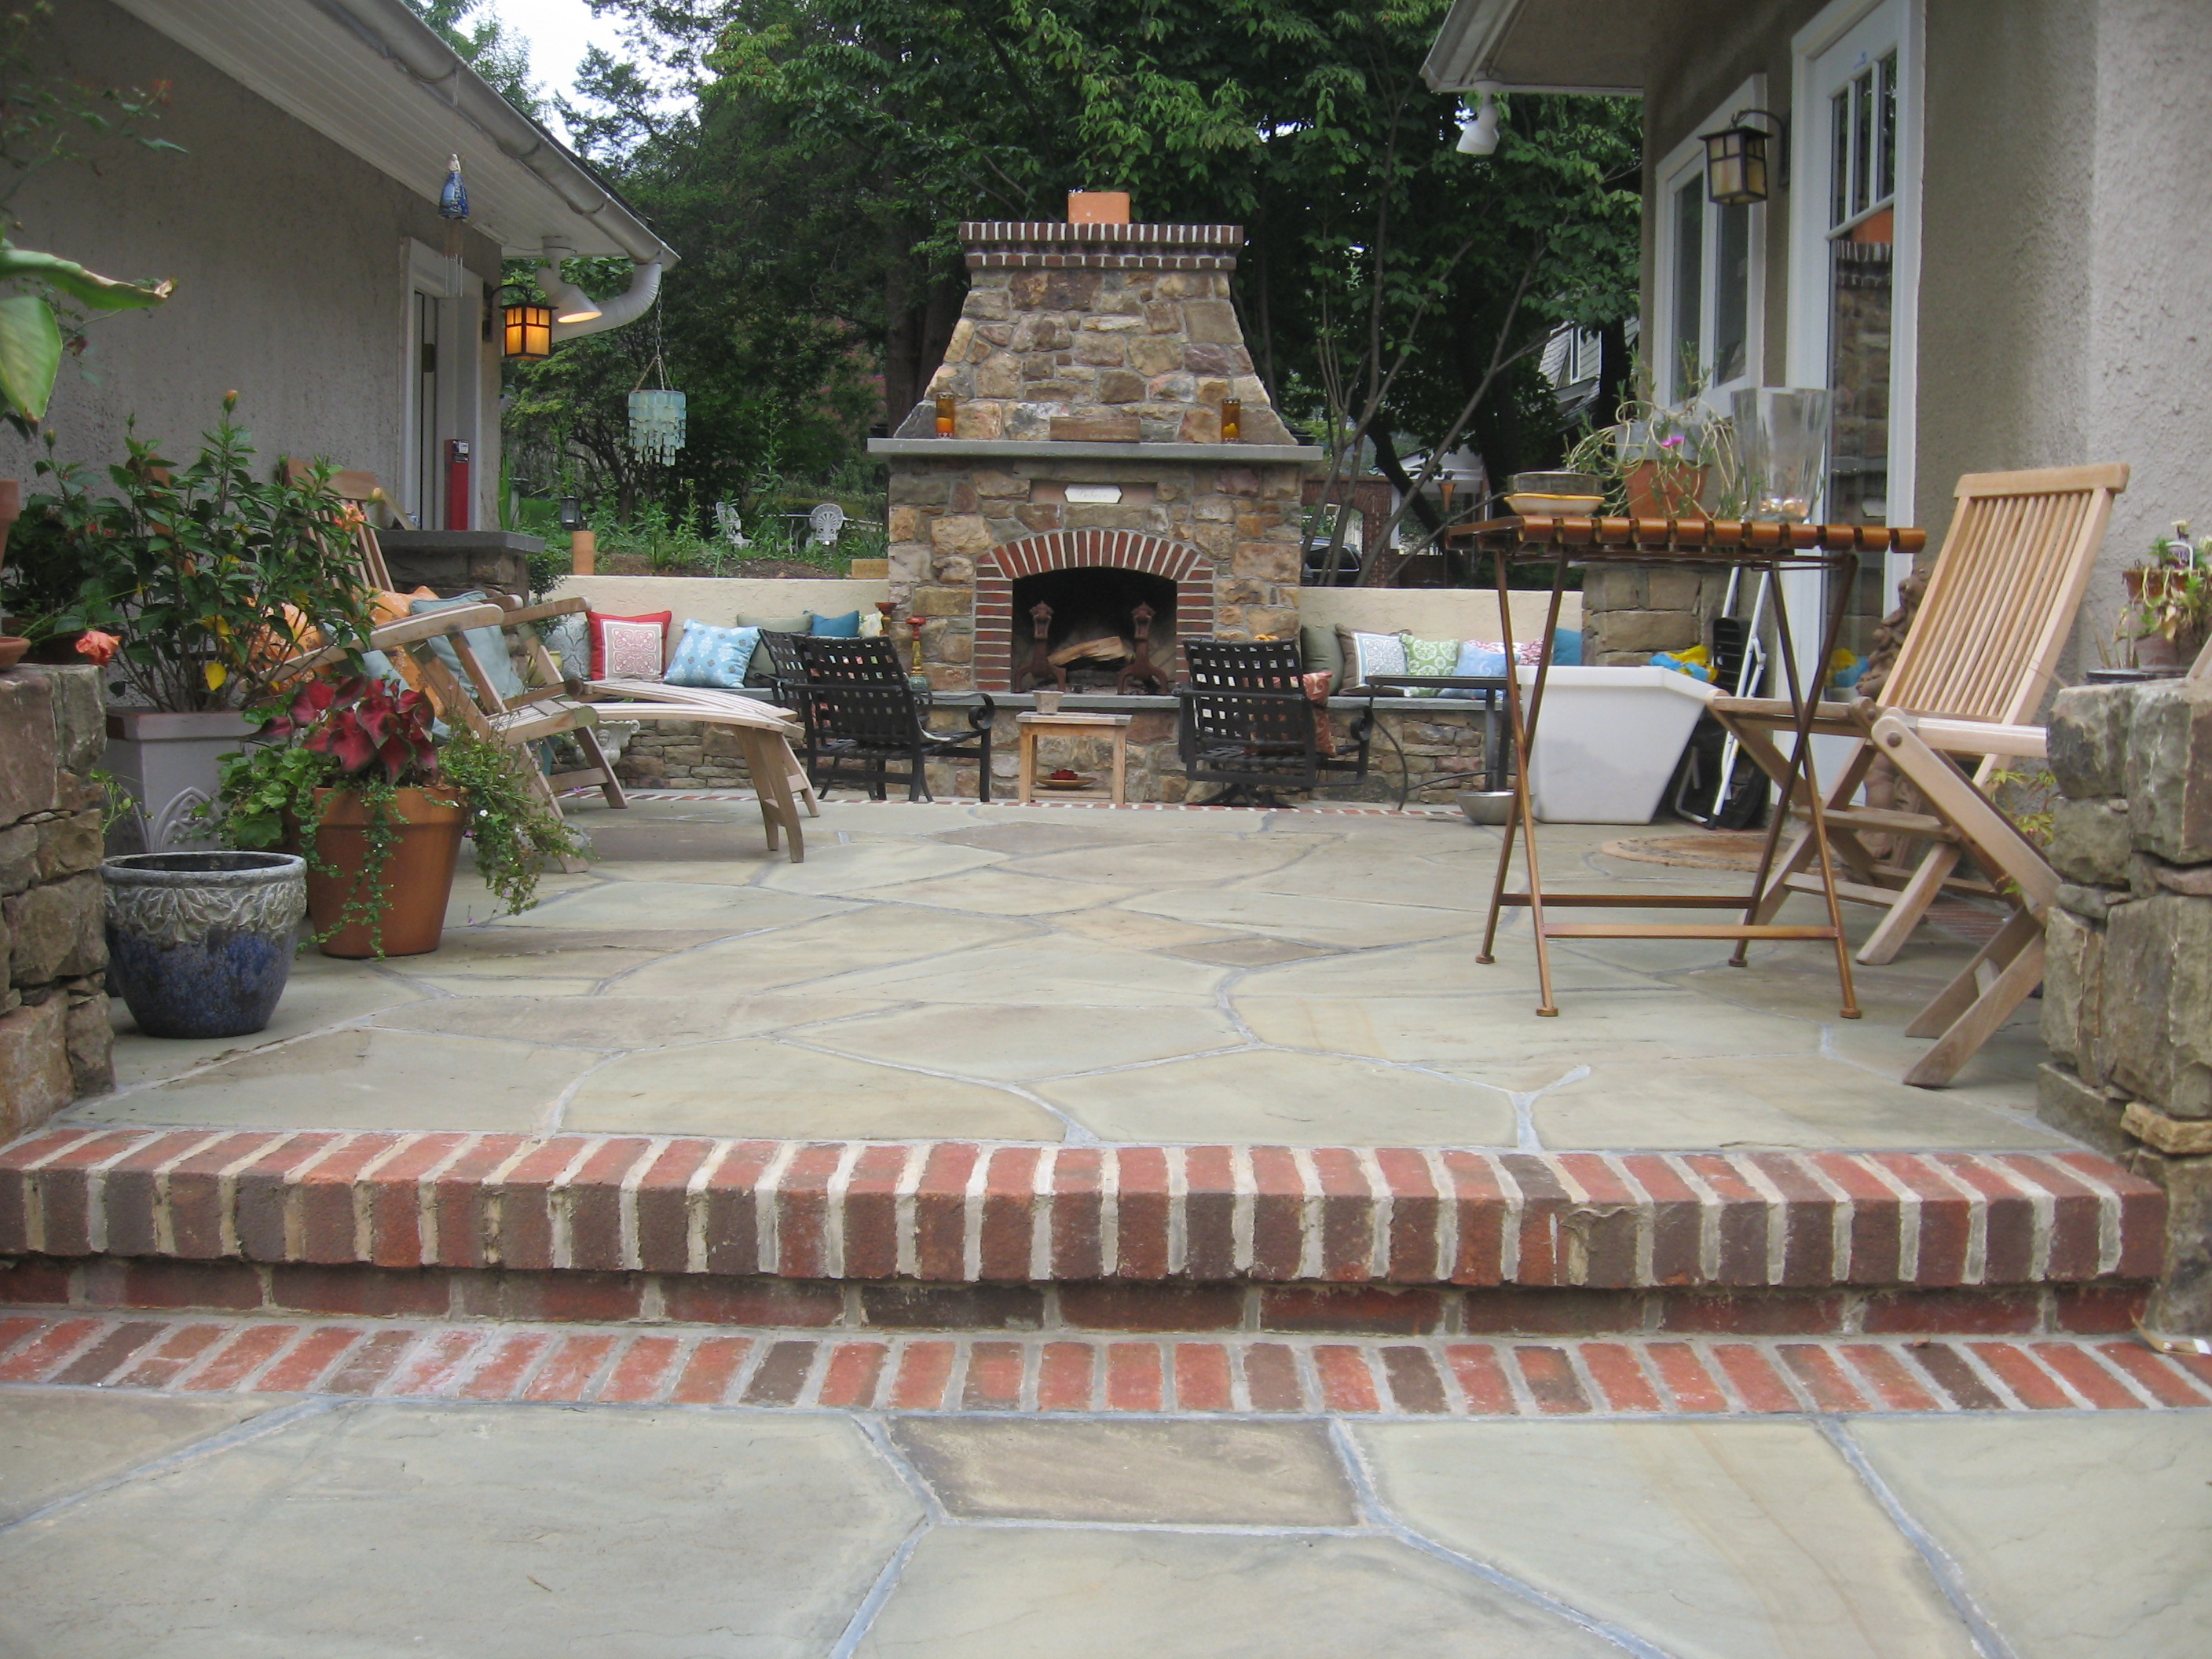 Irregular flagstone patio accented with brick